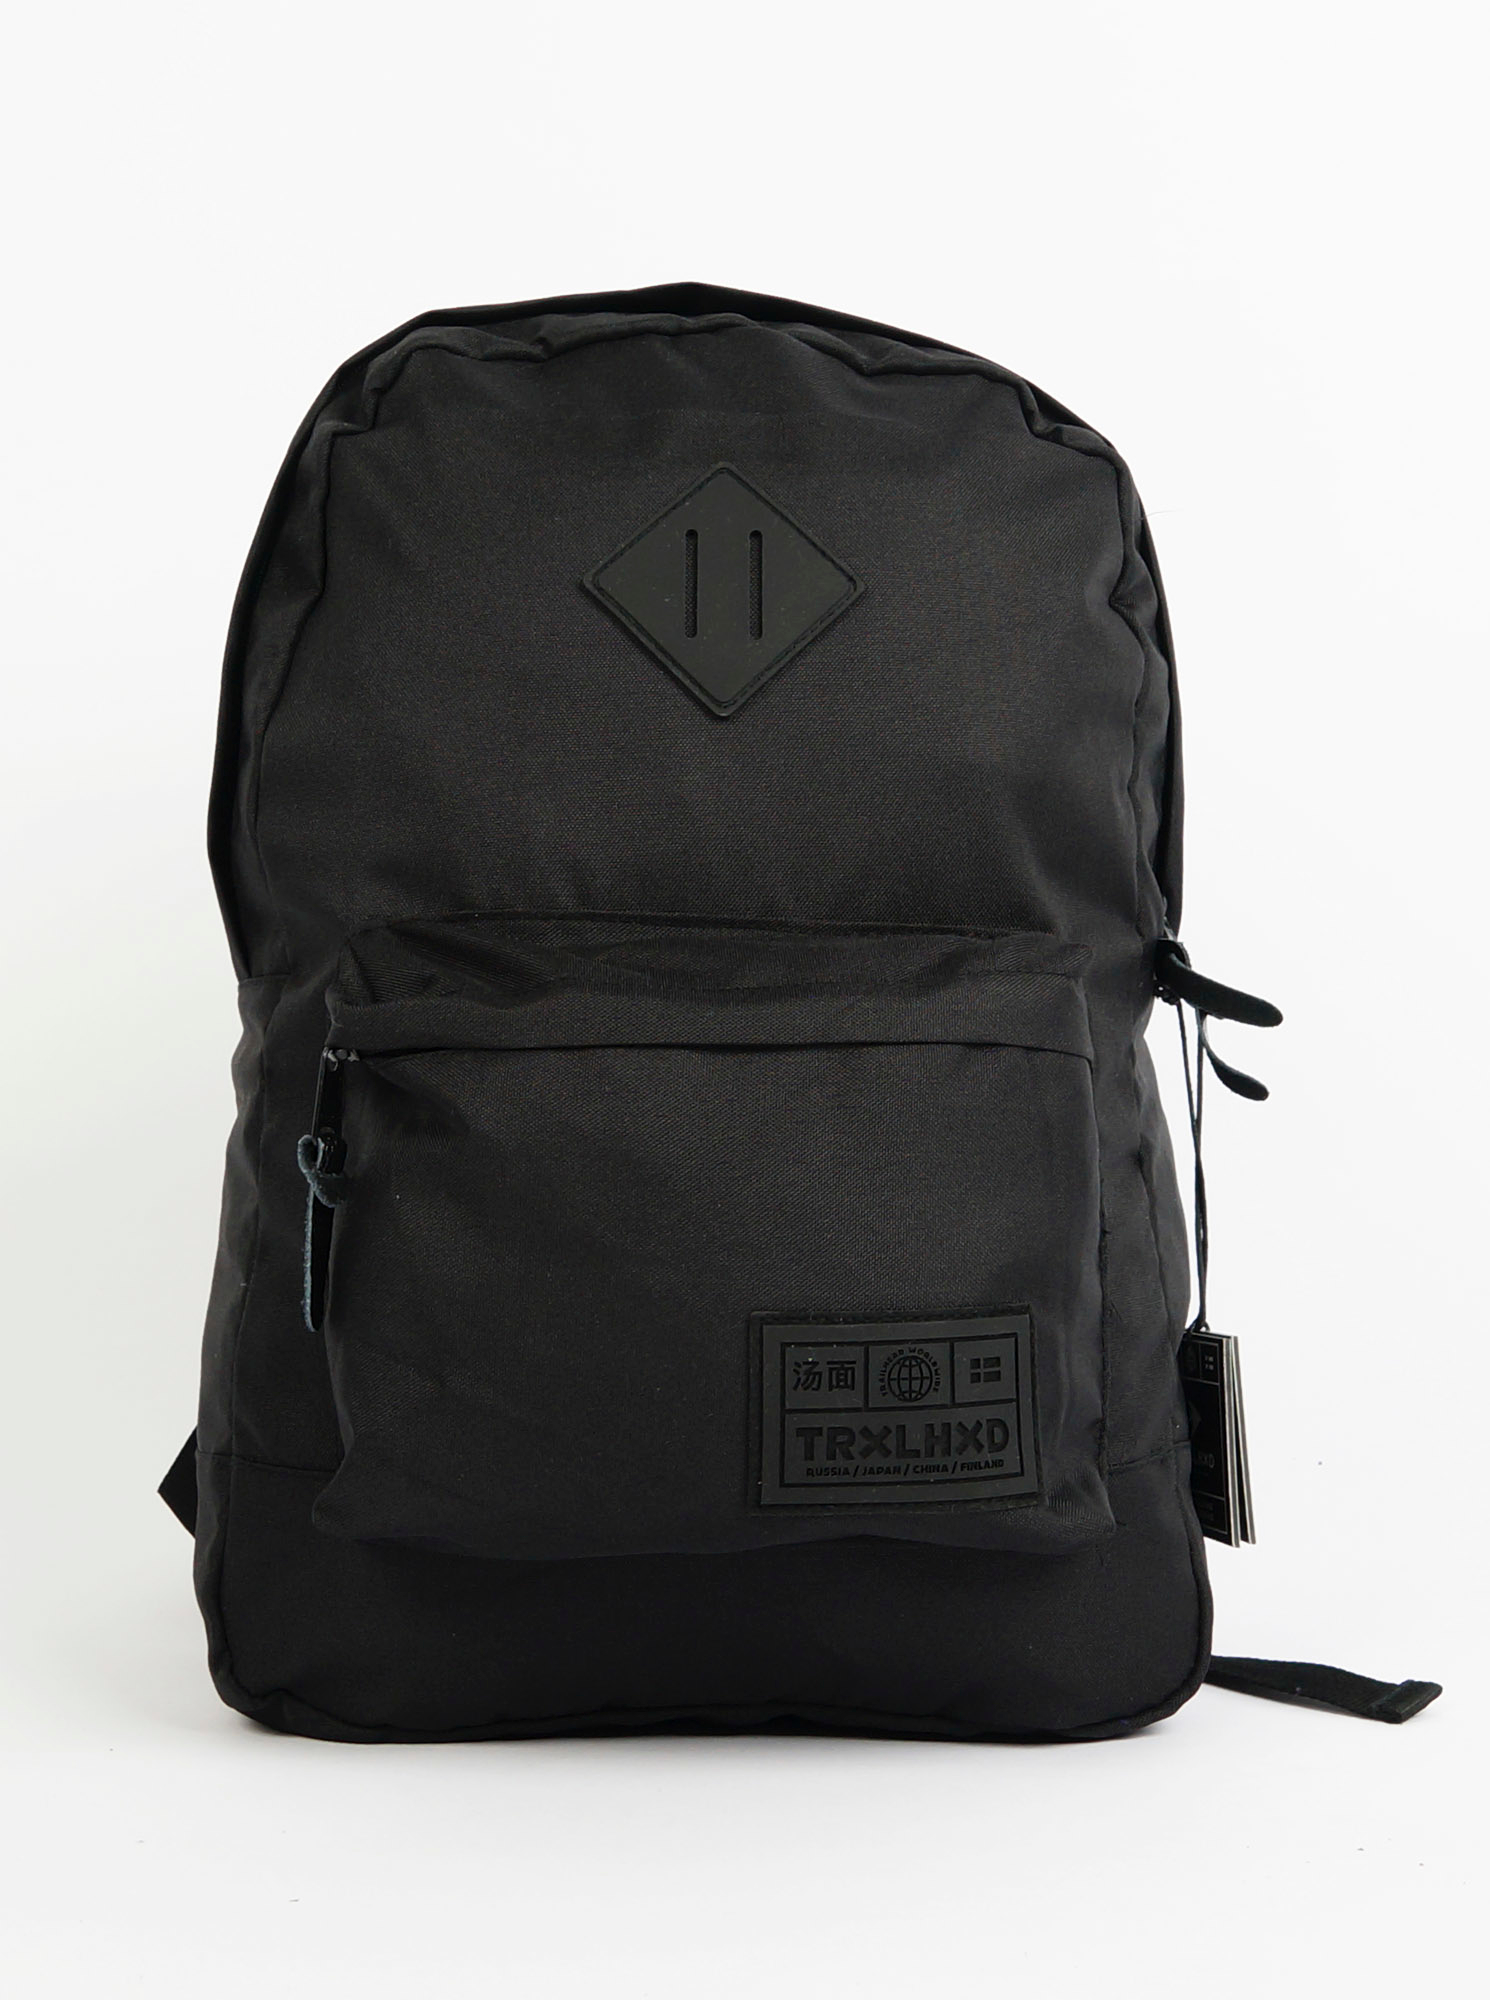 Рюкзак Trailhead BAG002-18 Чёрный, BAG002-18